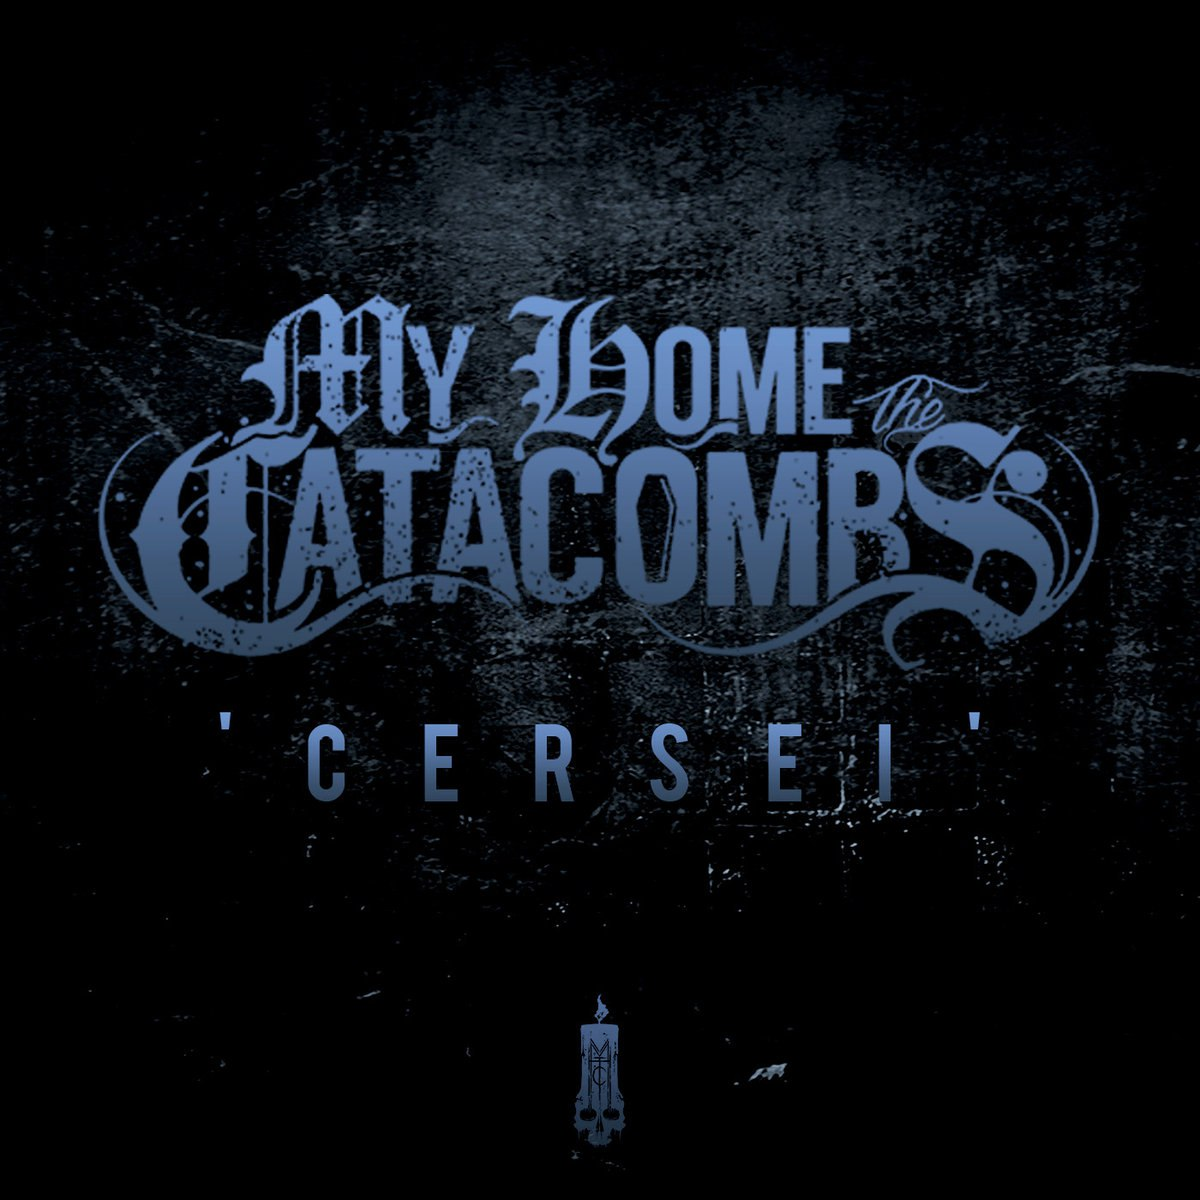 My Home, The Catacombs - Cersei [single] (2016)